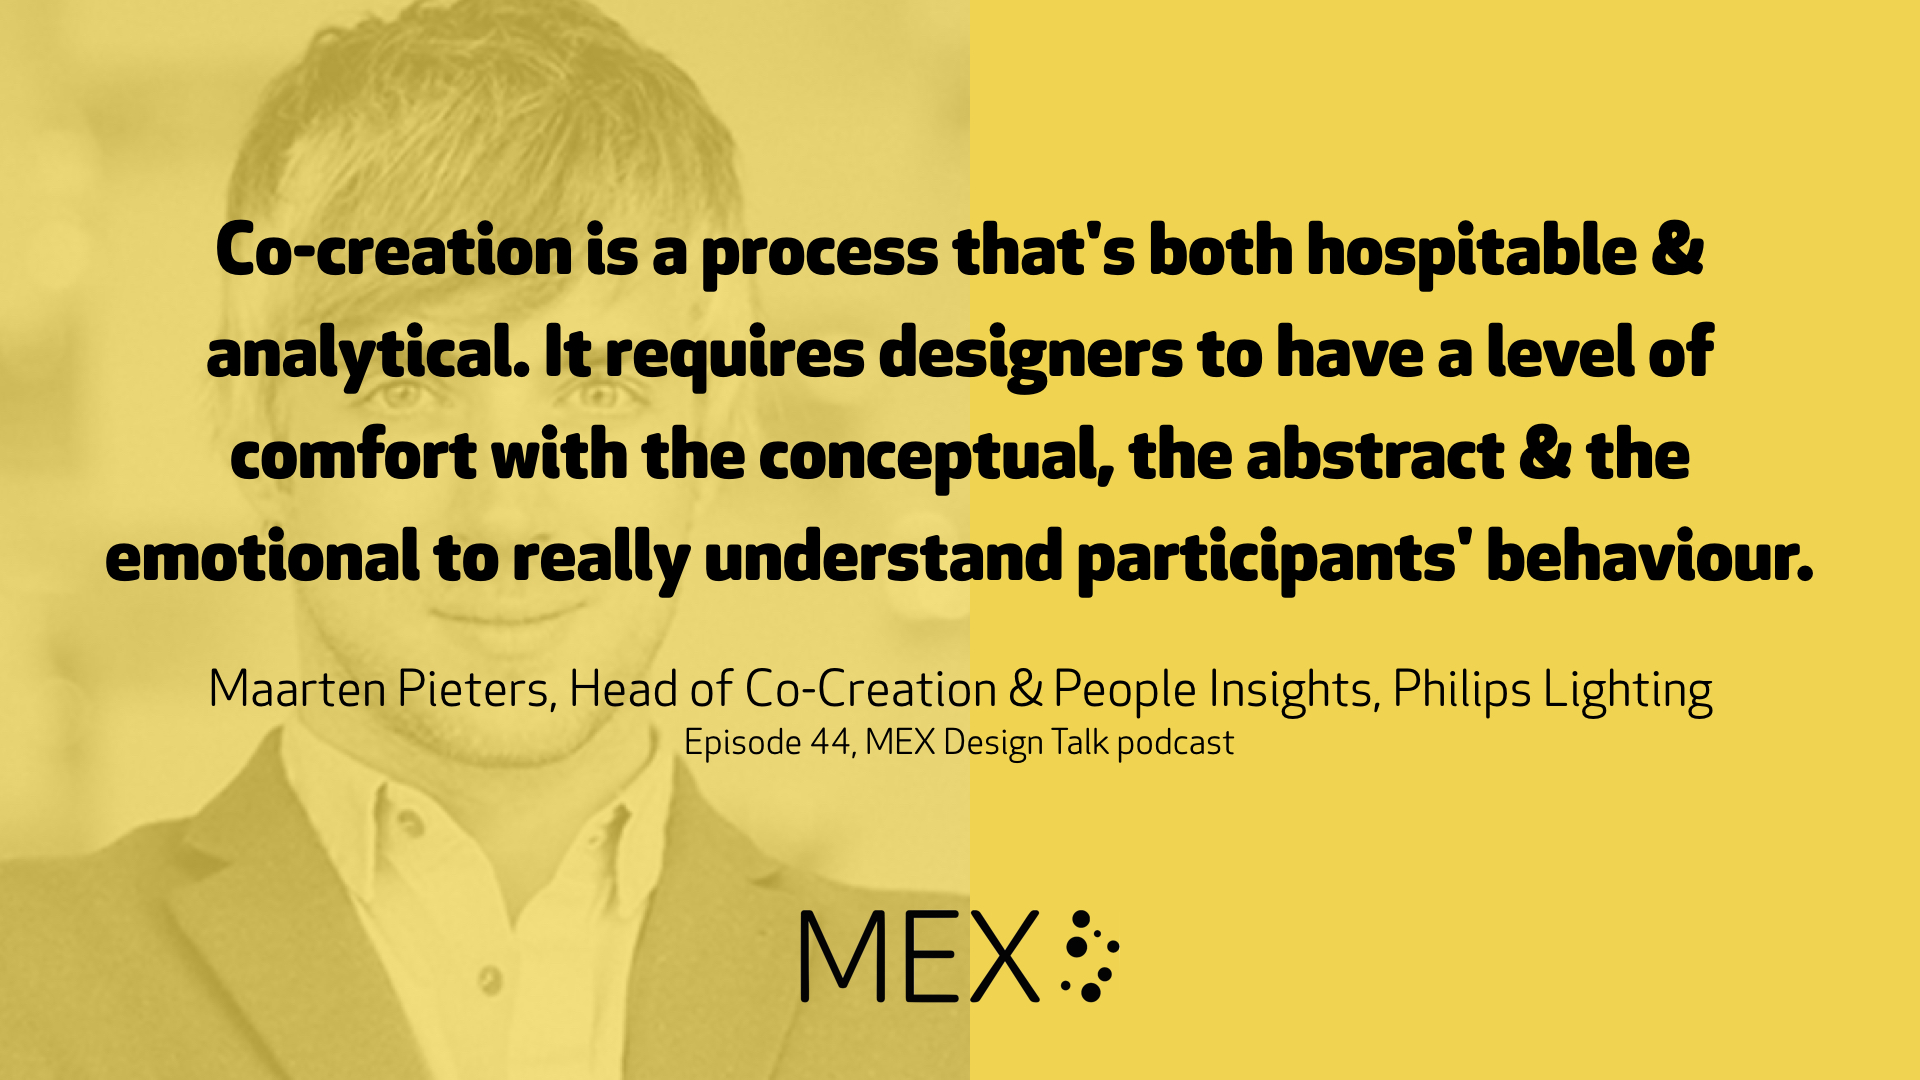 Co-creation is a process that's both hospitable & analytical. It requires designers to have a level of comfort with the conceptual, the abstract & the emotional to really understand participants' behaviour.  Maarten Pieters, Head of Co-Creation & People Insights, Philips Lighting Episode 44, MEX Design Talk podcast